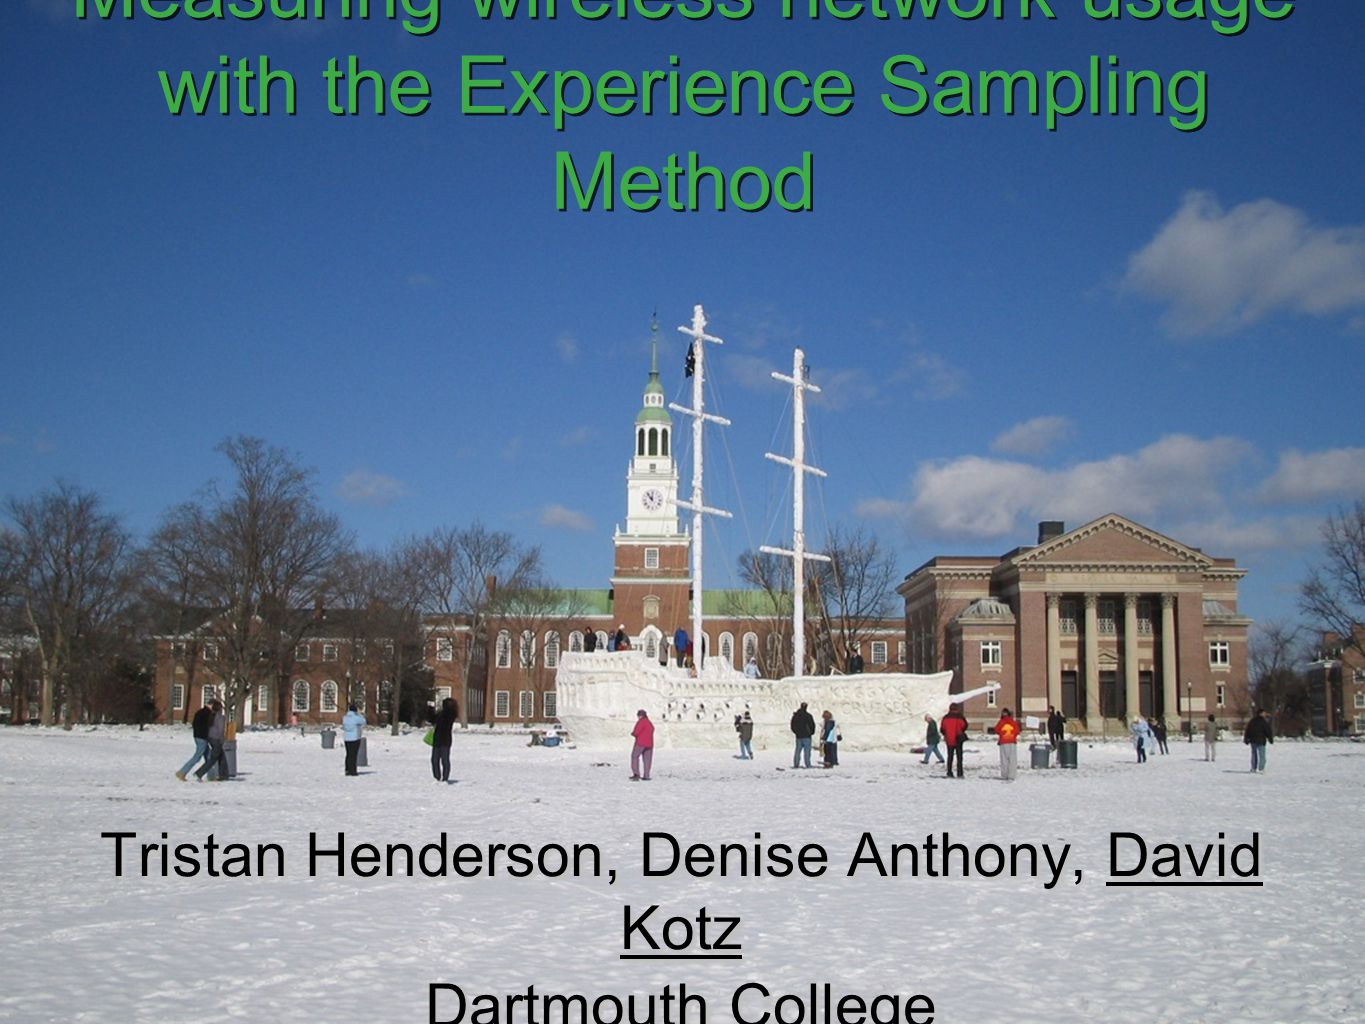 Measuring wireless network usage with the Experience Sampling Method Tristan Henderson, Denise Anthony, David Kotz Dartmouth College Tristan Henderson